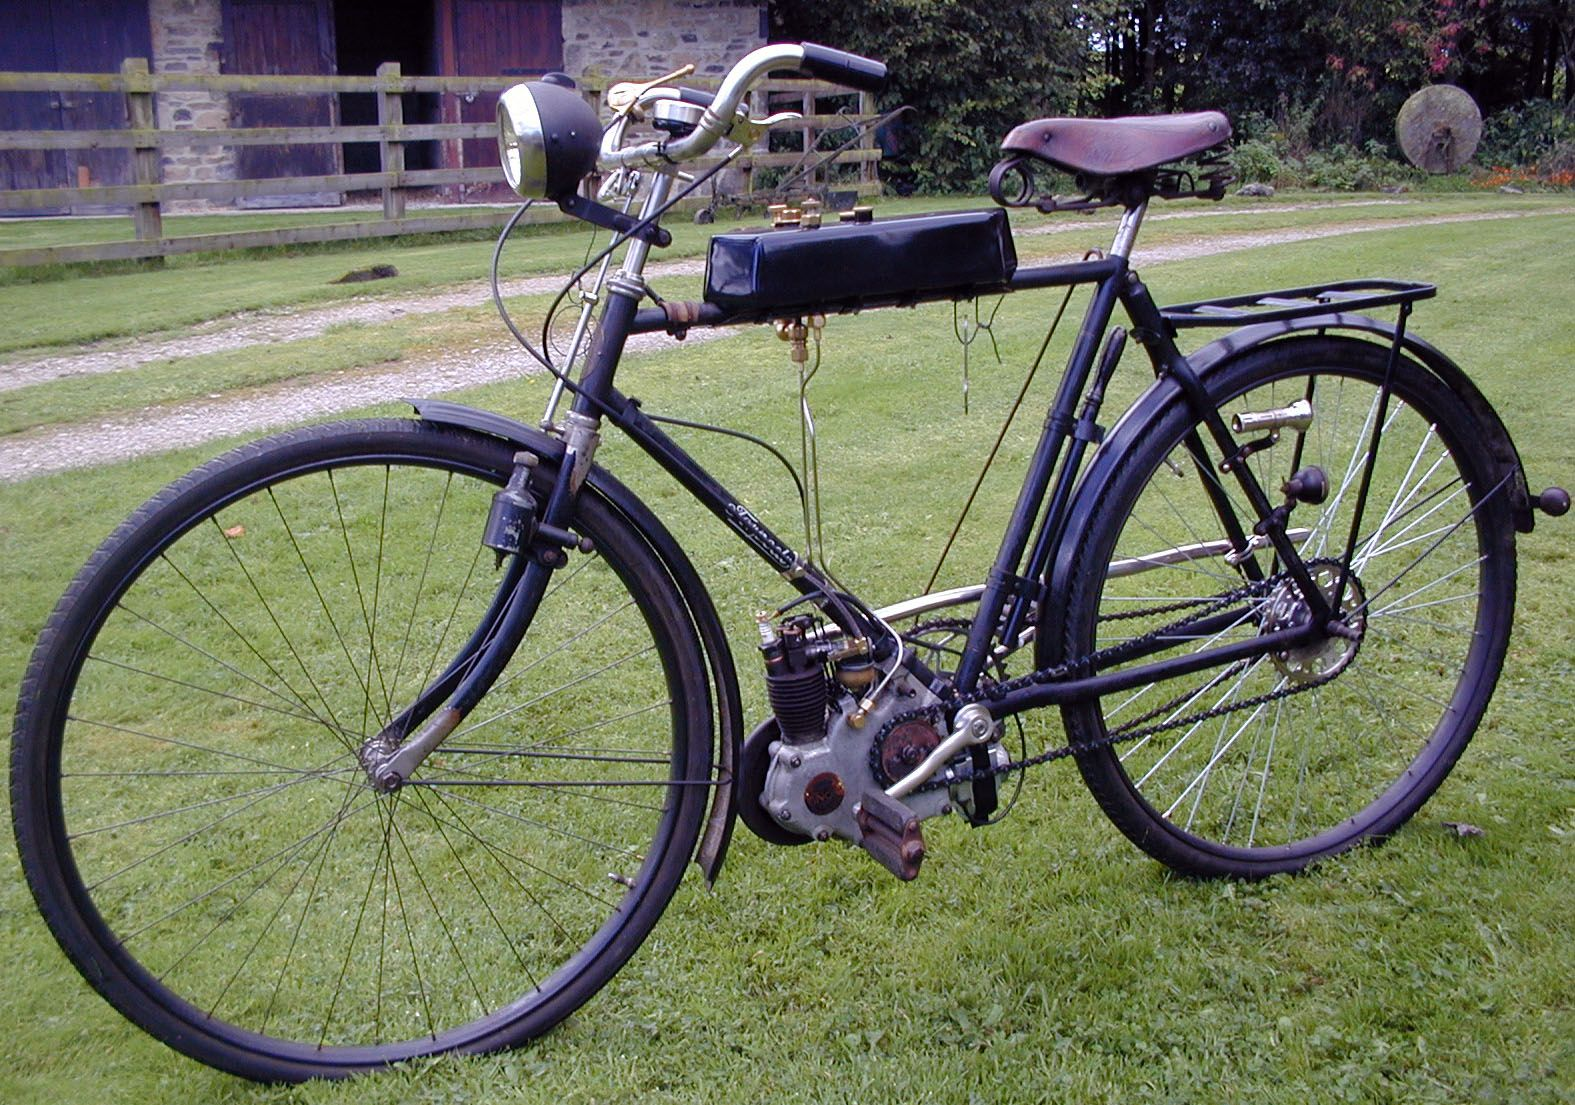 Click This Image To Show The Full Size Version Bicycle Old Bikes Motorized Bicycle